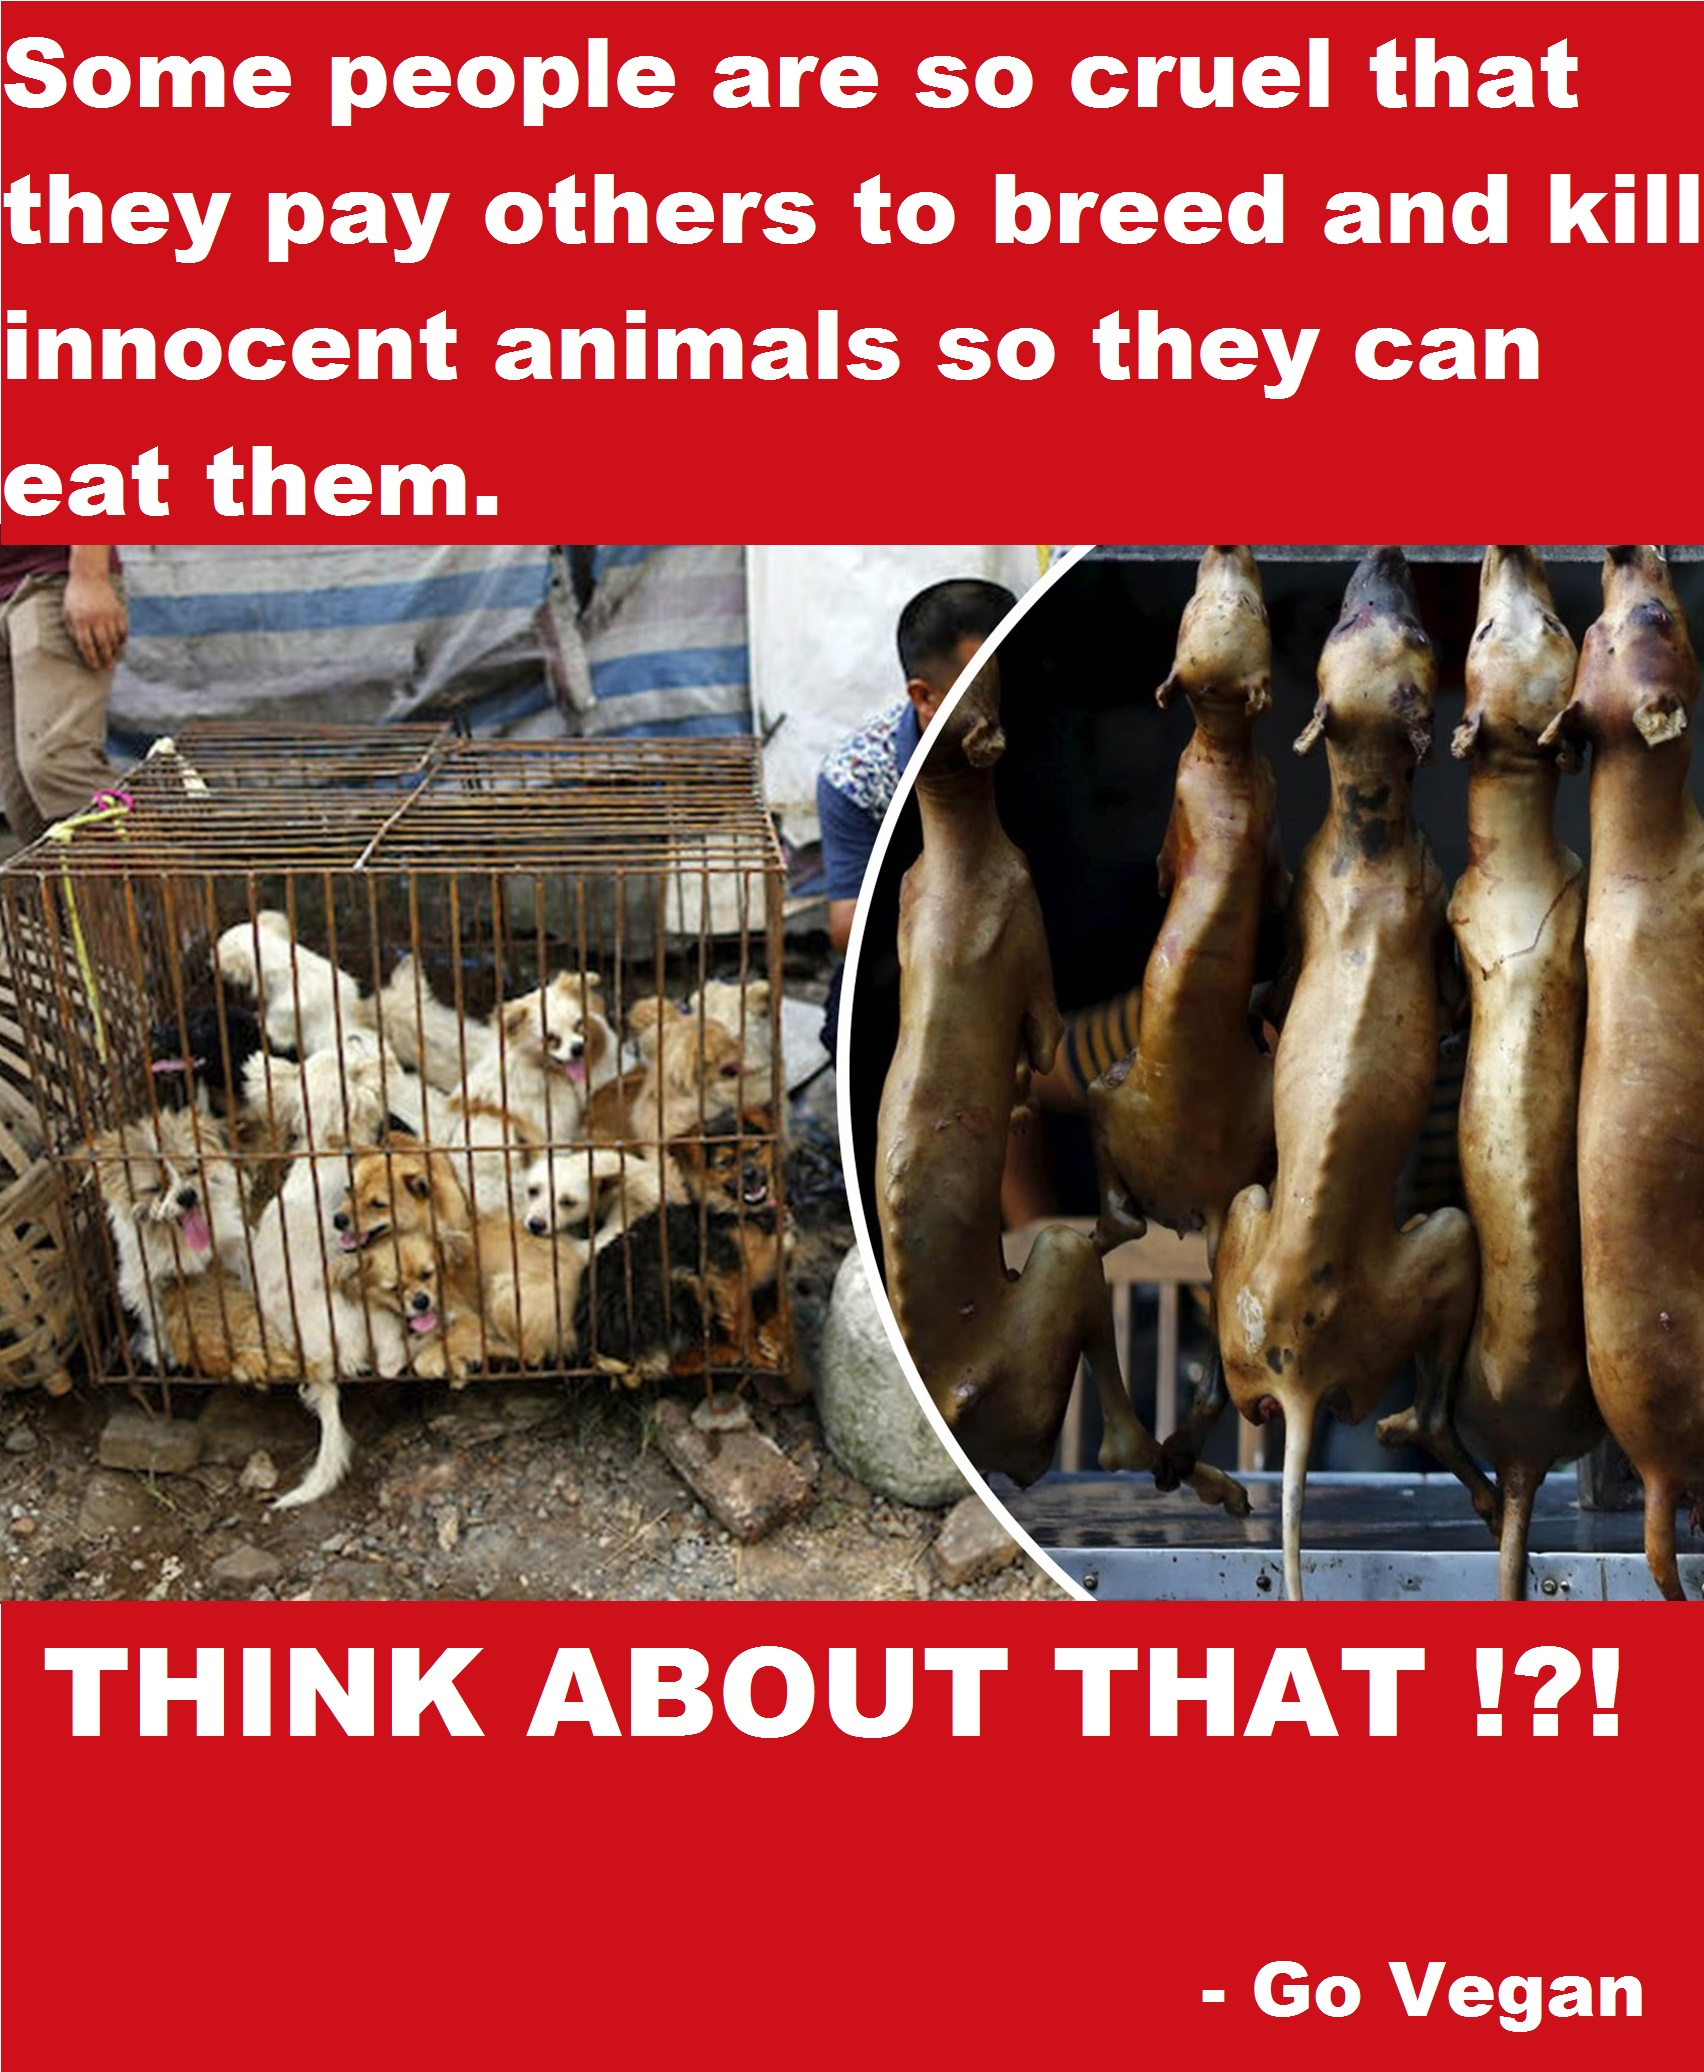 THINK ABOUT THAT !?! - Go Vegan